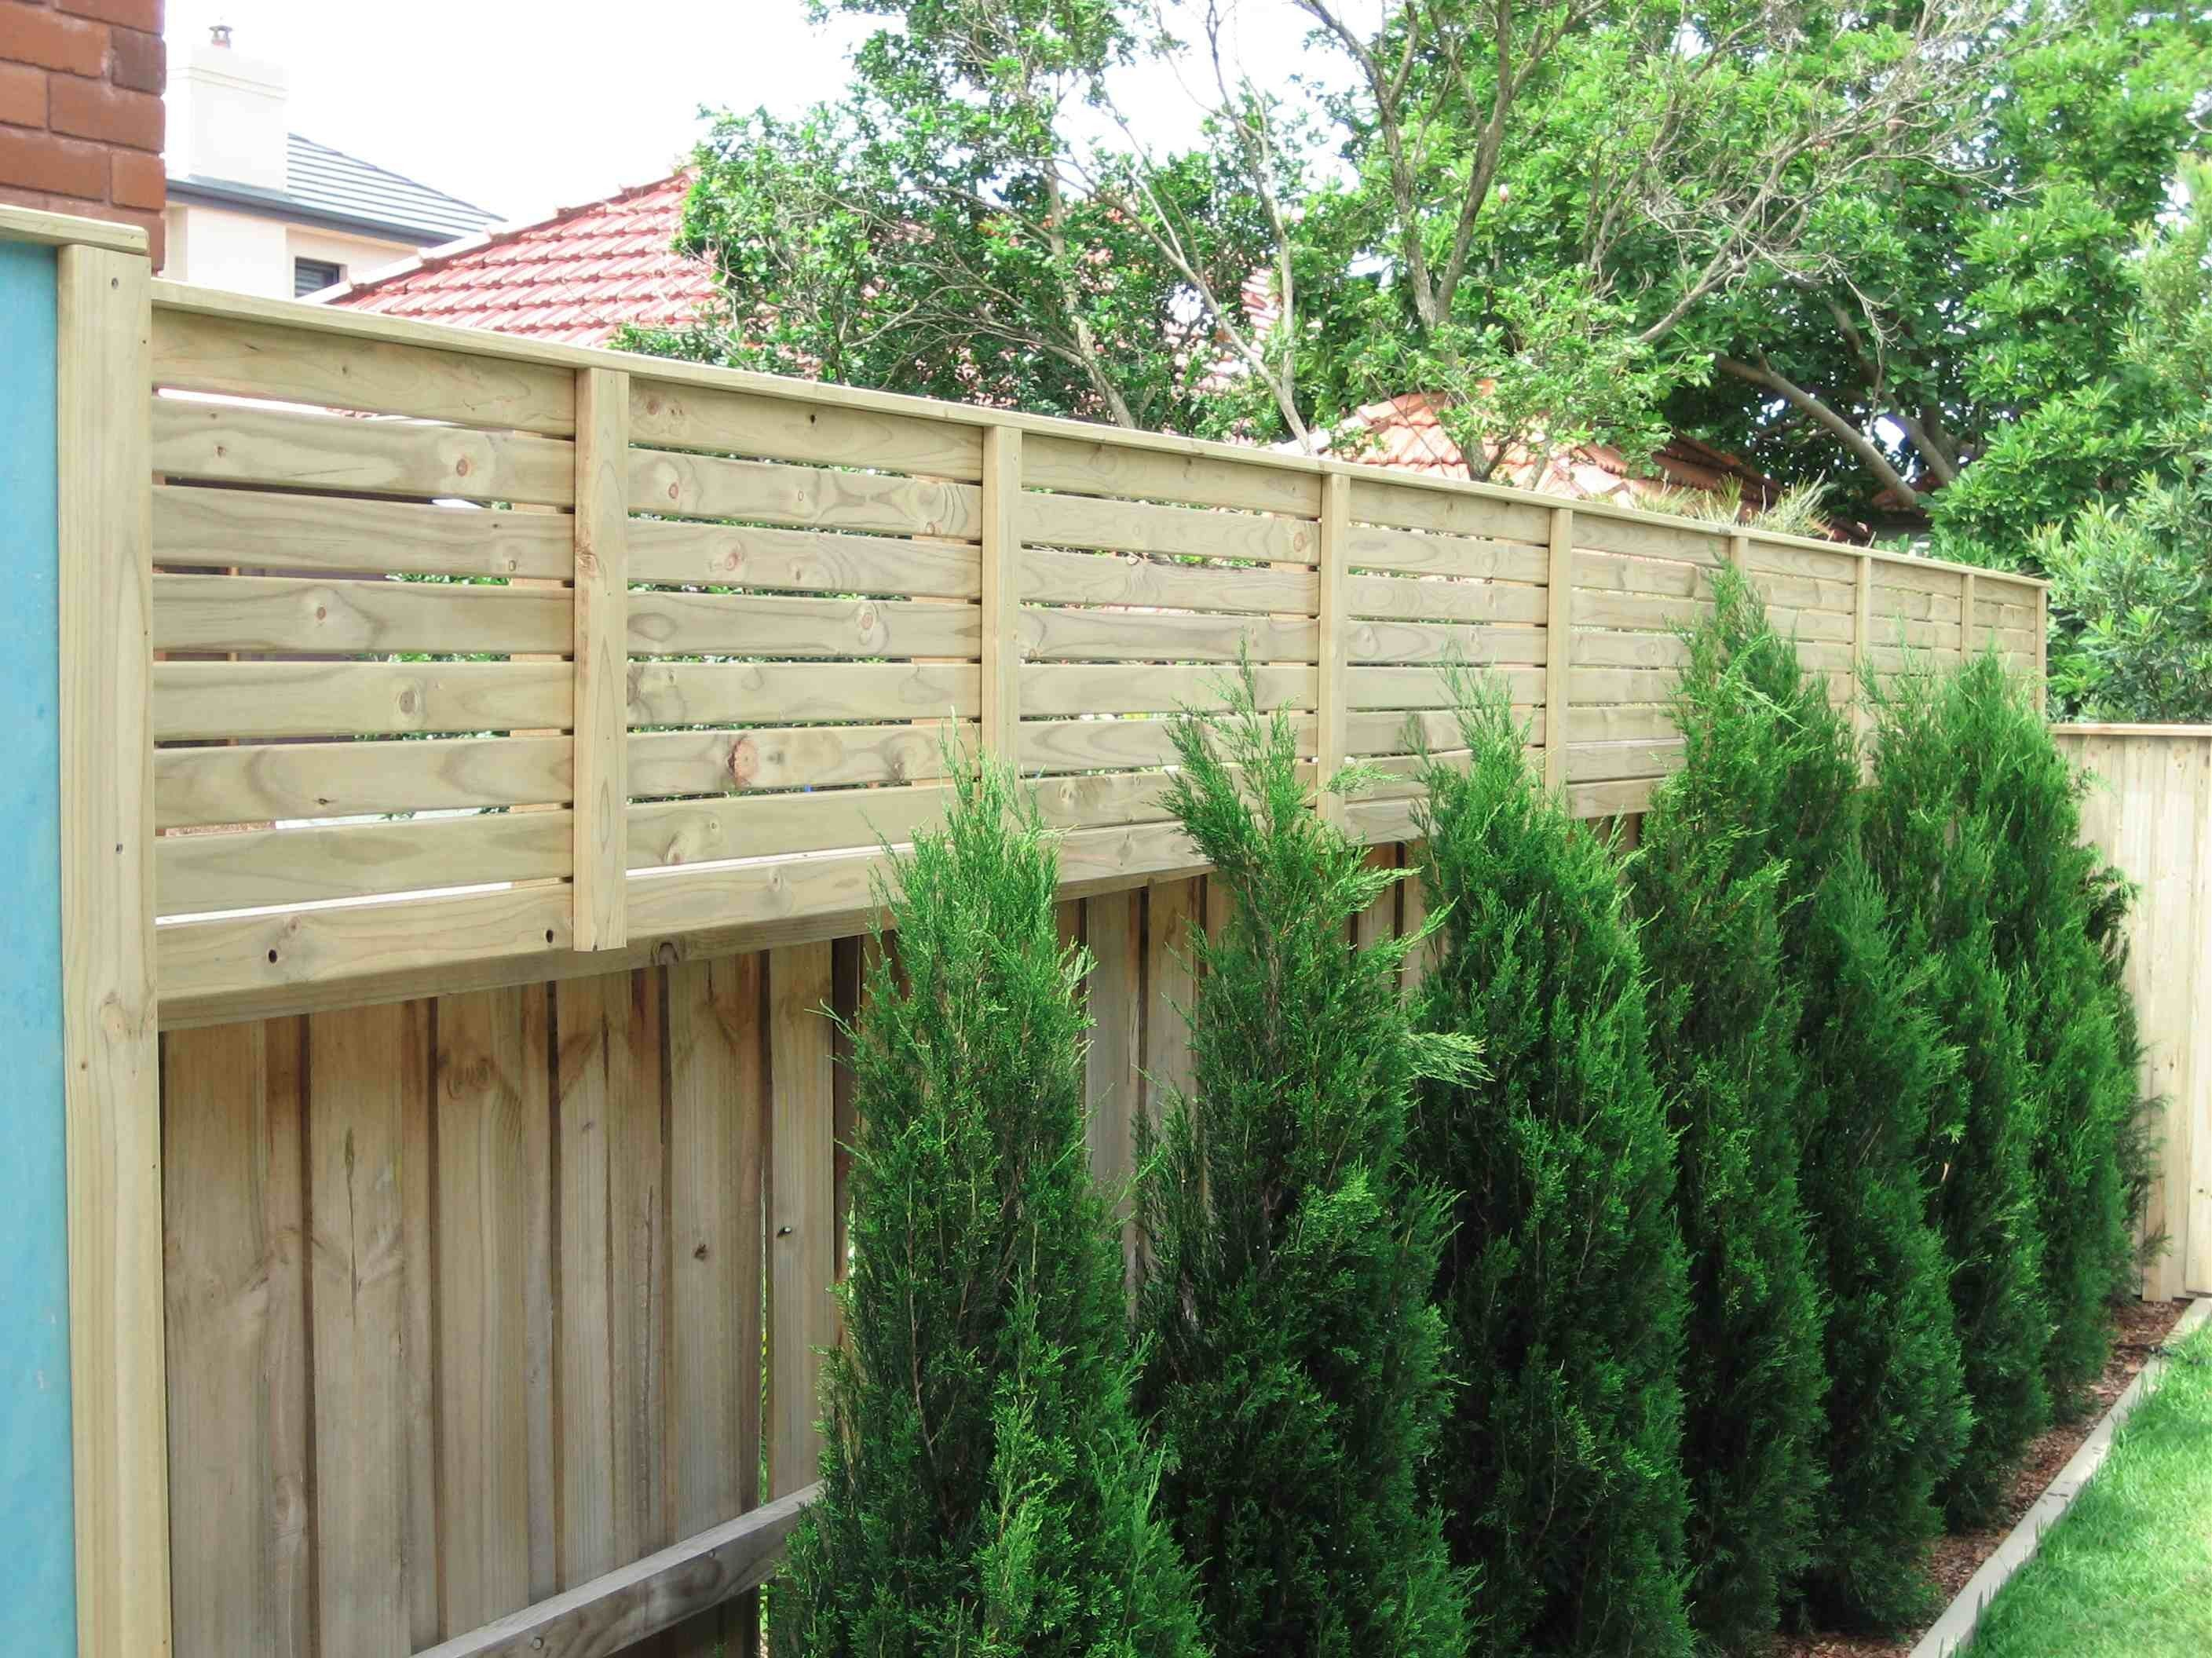 Privacy screen against fence google search house ideas privacy screen against fence google search baanklon Choice Image